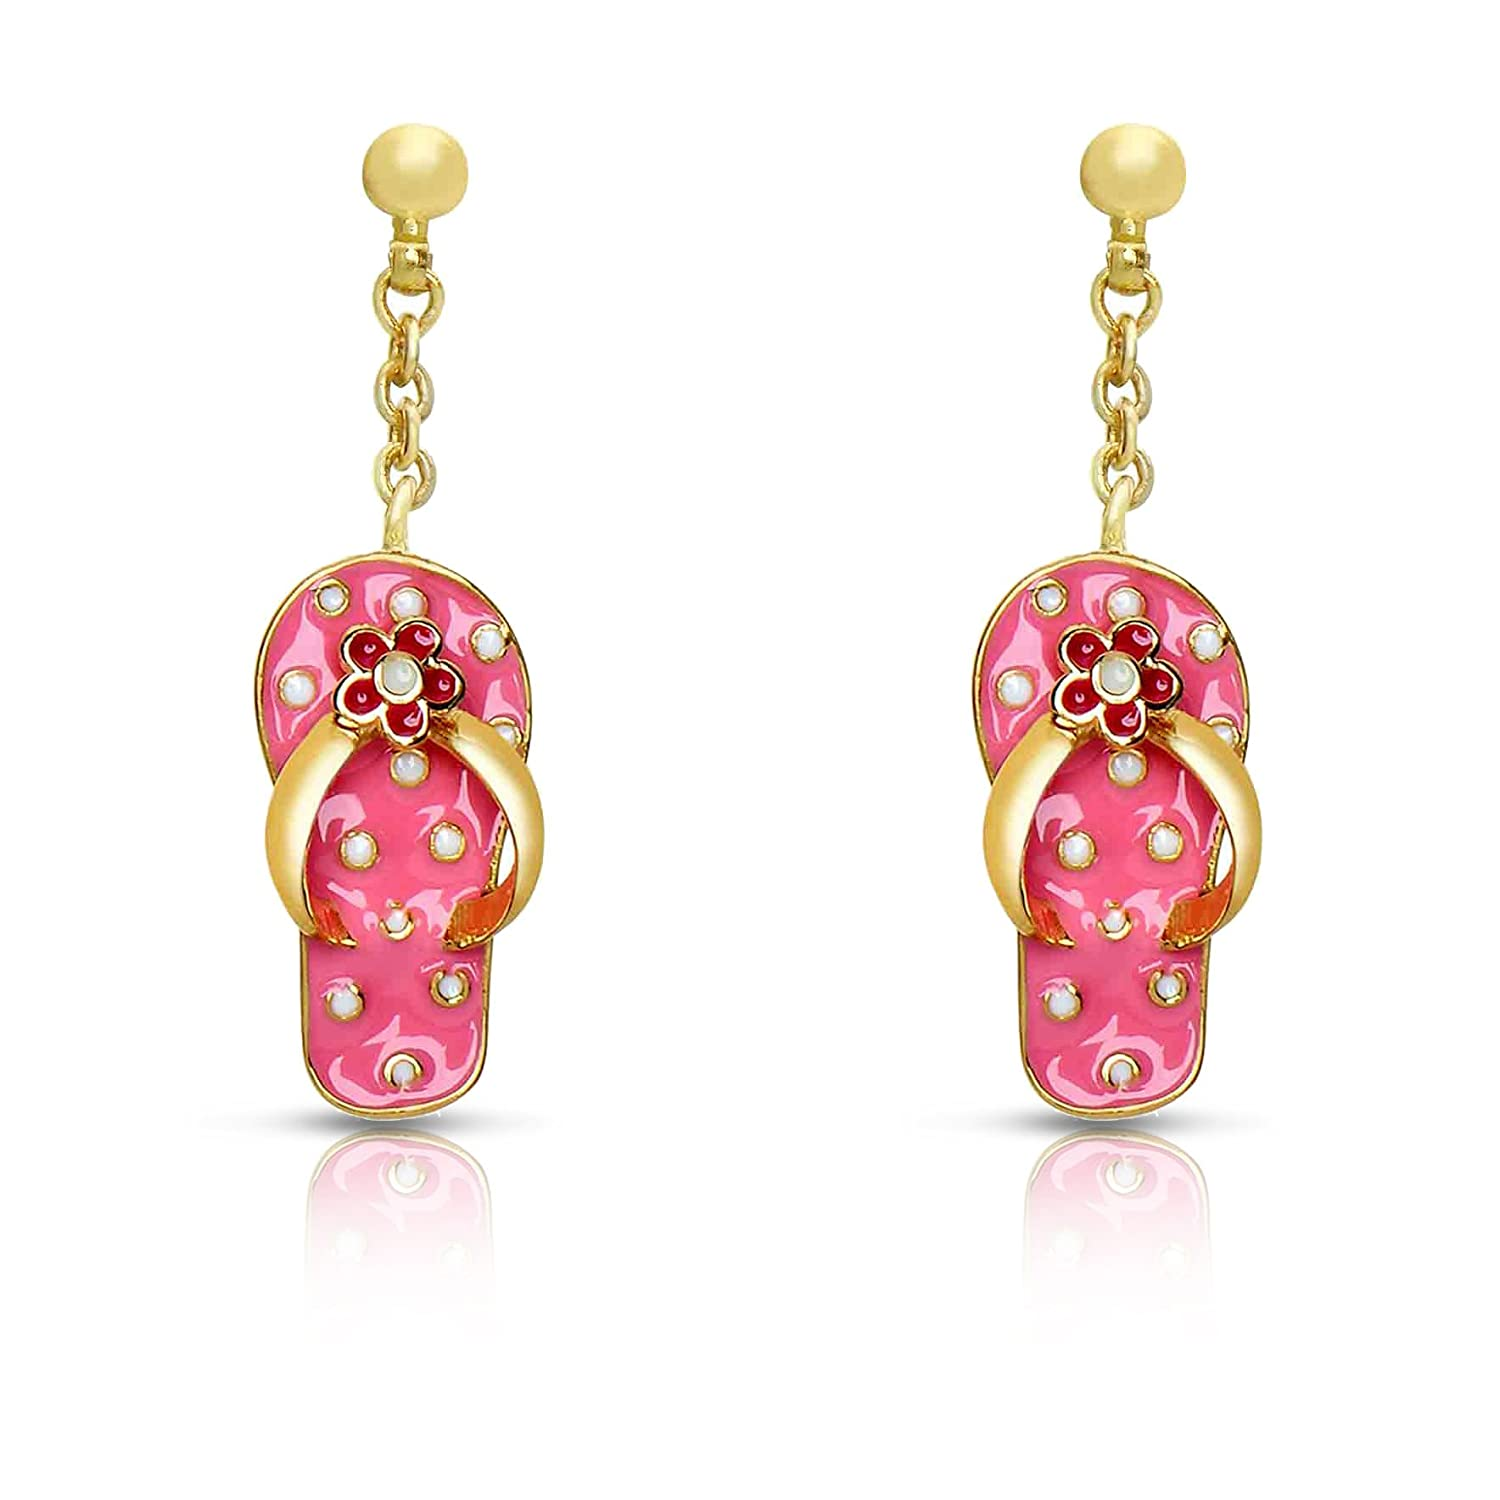 Gold Plated with Polka Dot Pink Enamel By Lily Nily Jewelry for Girls Flip-Flops Dangle Earrings